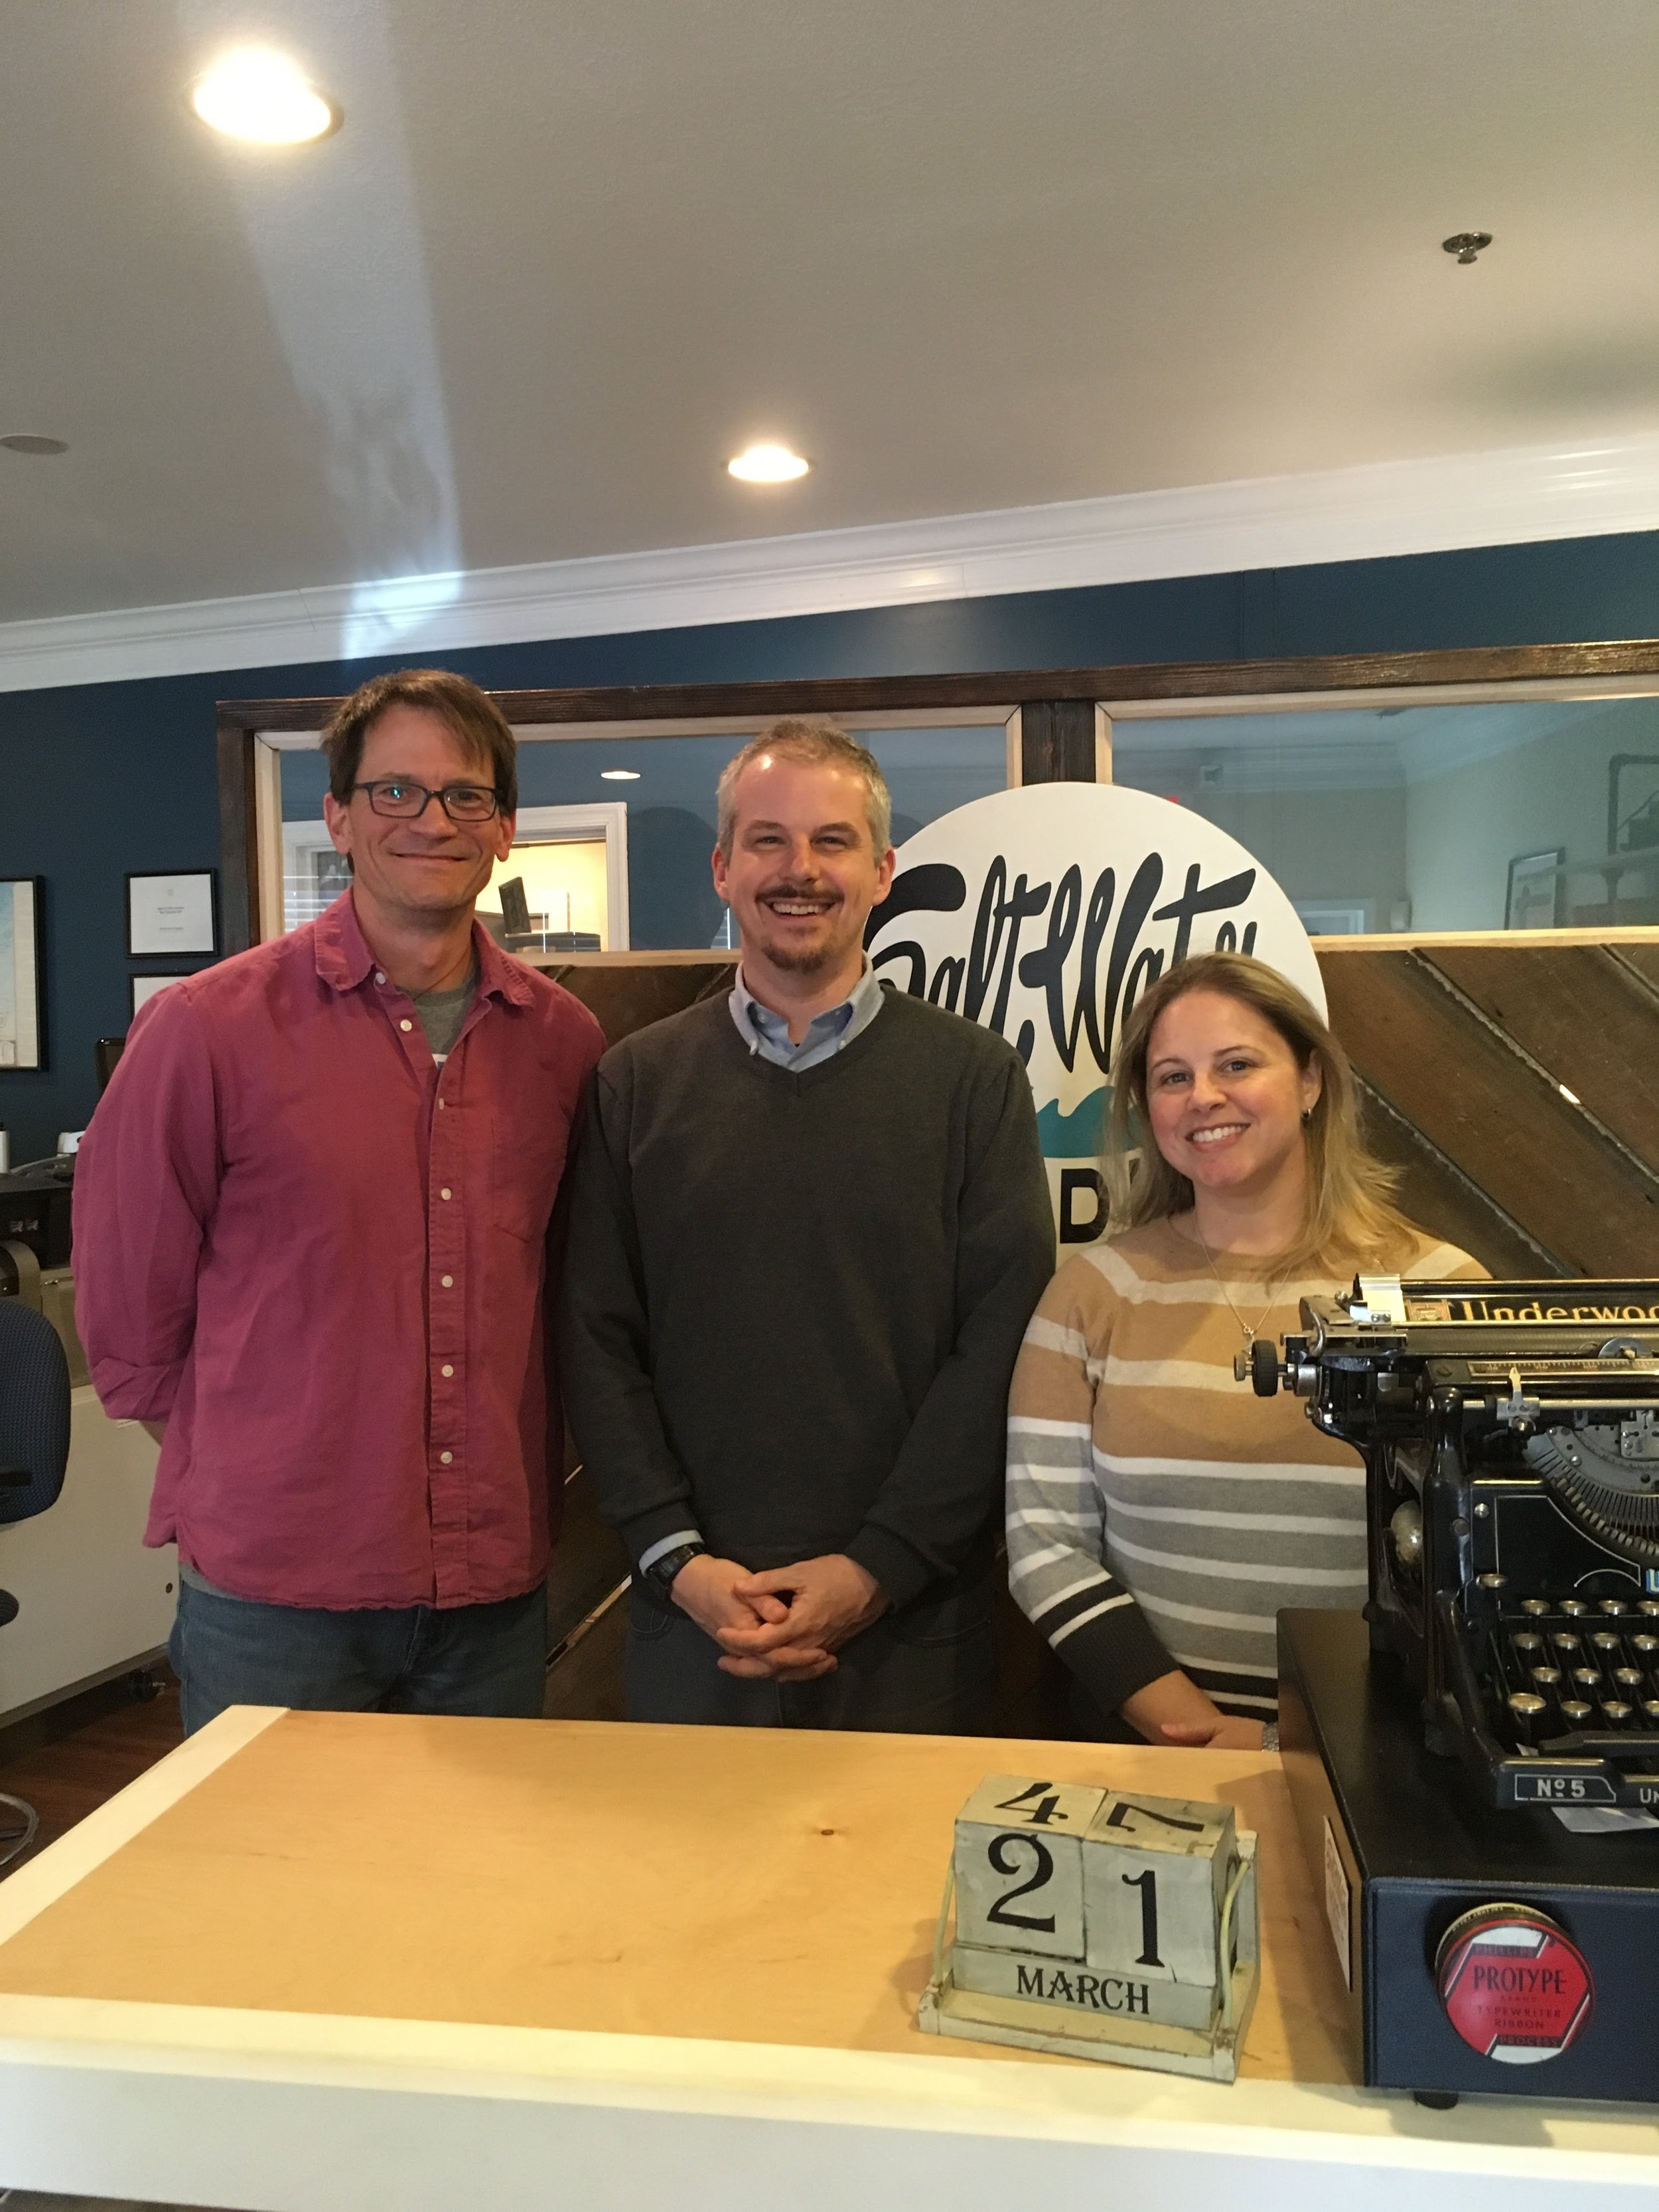 Guest co-host Jeff Smith, acclaimed poet James Arthur, and total nerd Stephanie Fowler